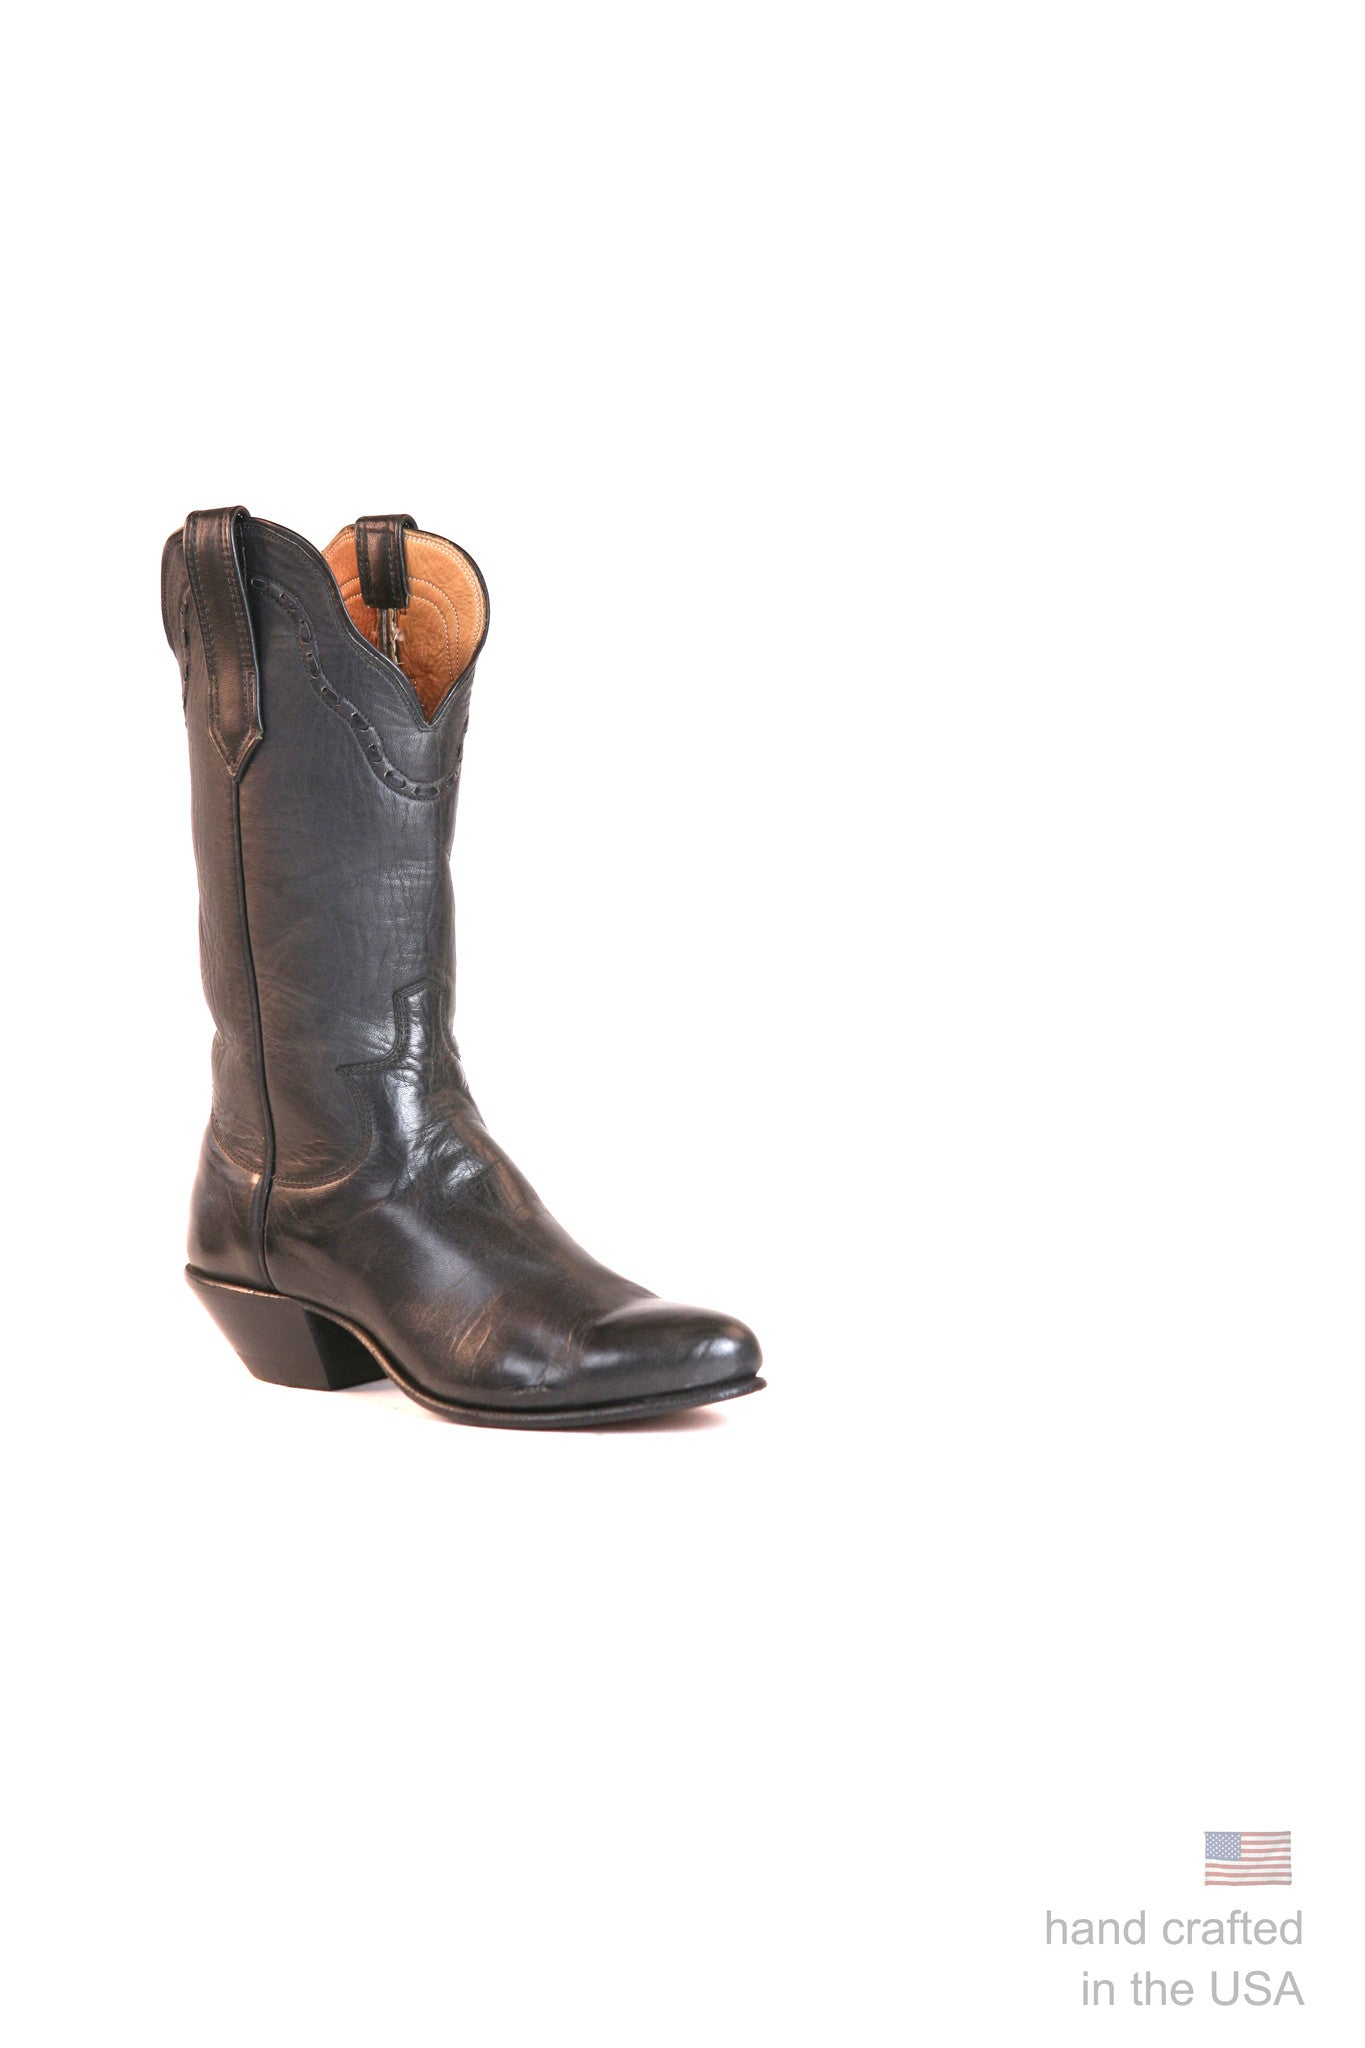 Singles: Boot 0036: Size 6A